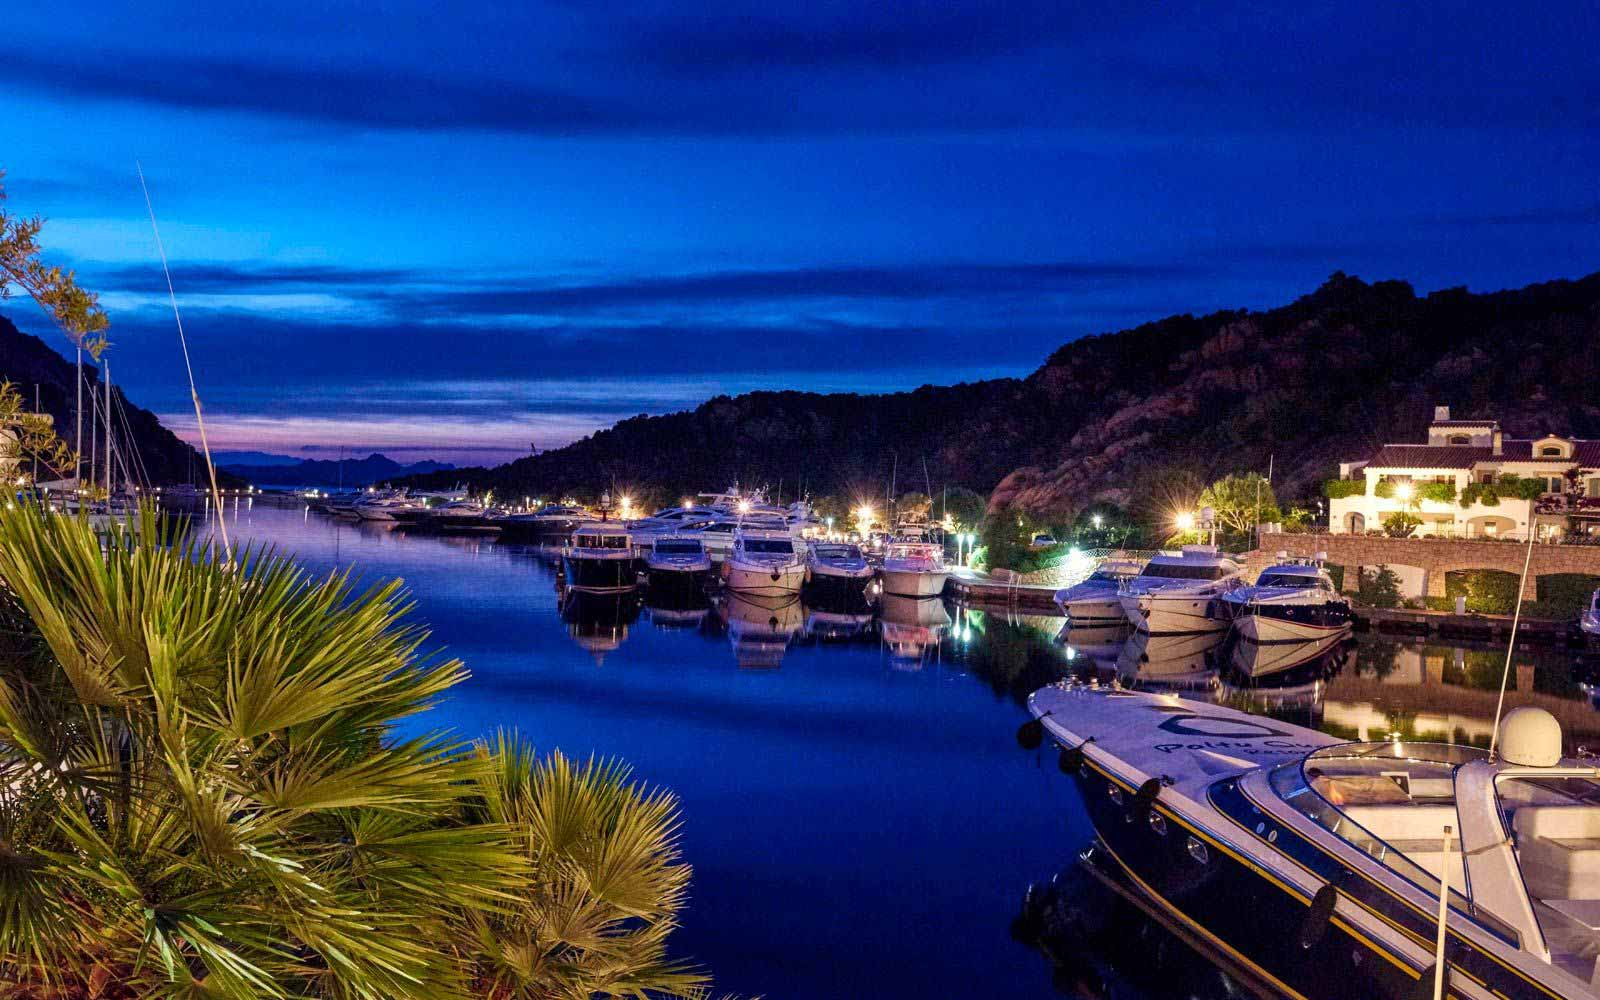 Harbour by night at Grand Hotel Poltu Quatu